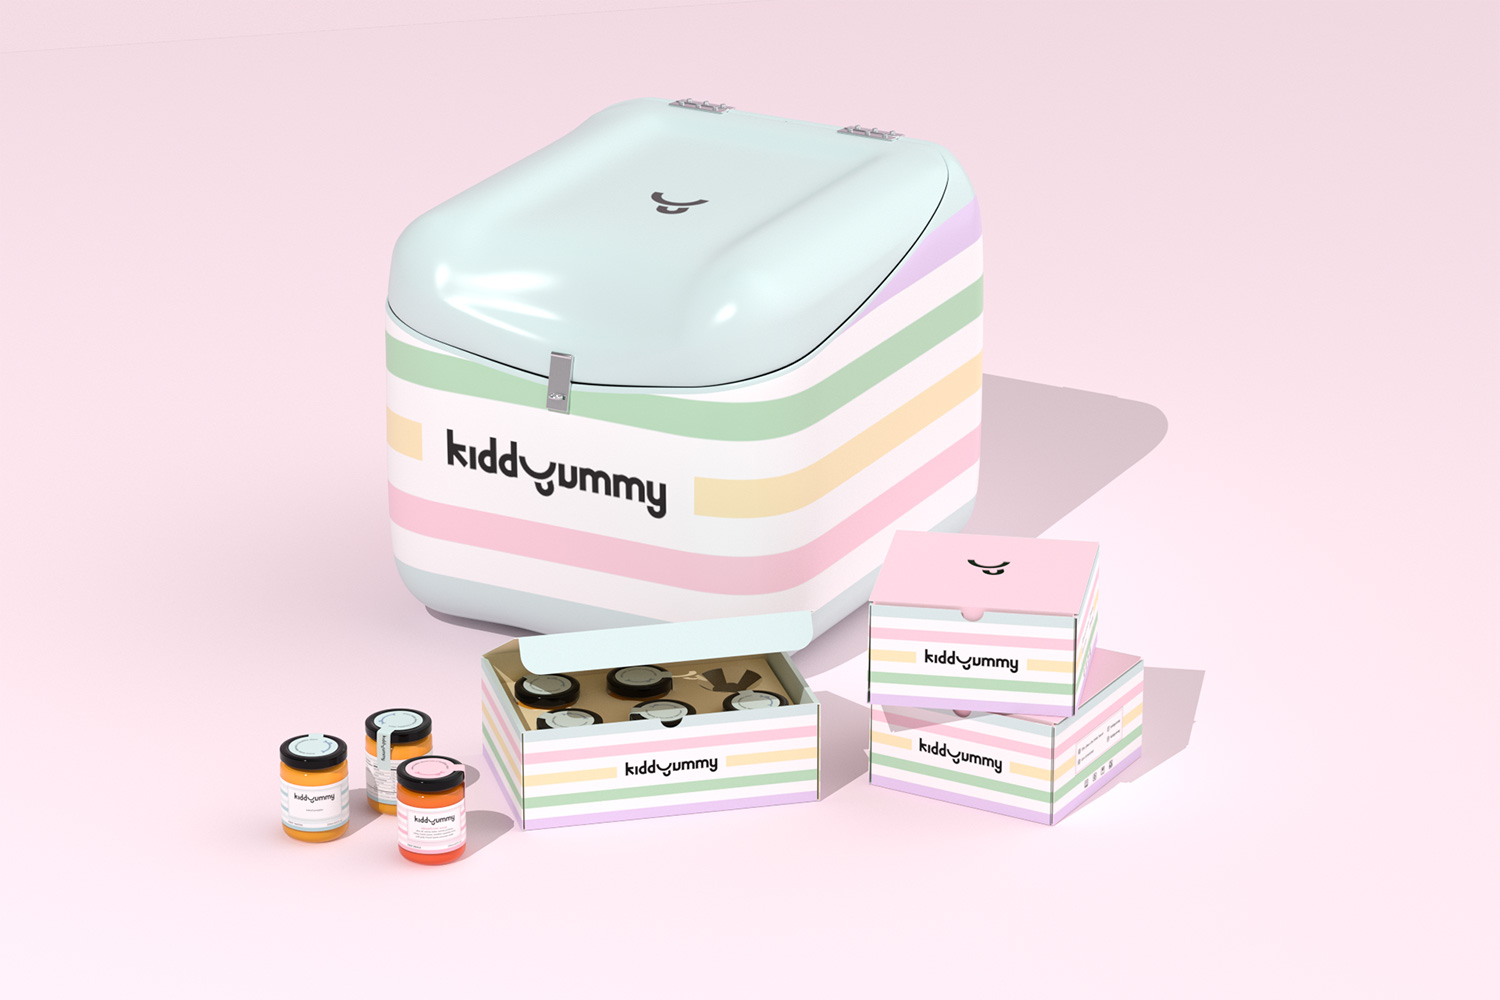 Kiddyummy packaging design including scooter box, jar, cartoon box with three different sizes